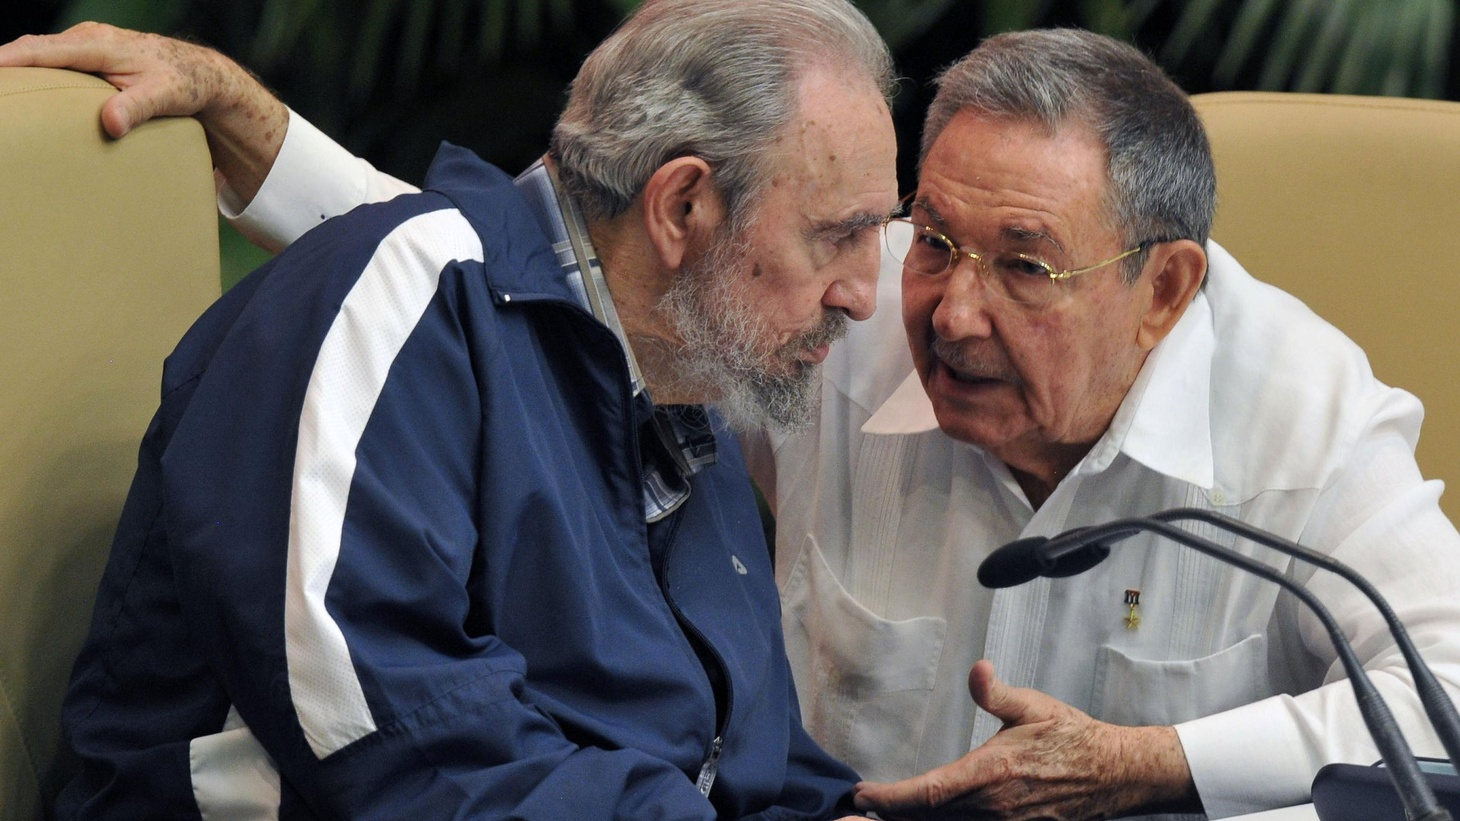 Cuba's dictatorship is the same age as those in the Middle East. But when Castro's cronies got a new lease on leadership, the next generation did not rise up in protest.